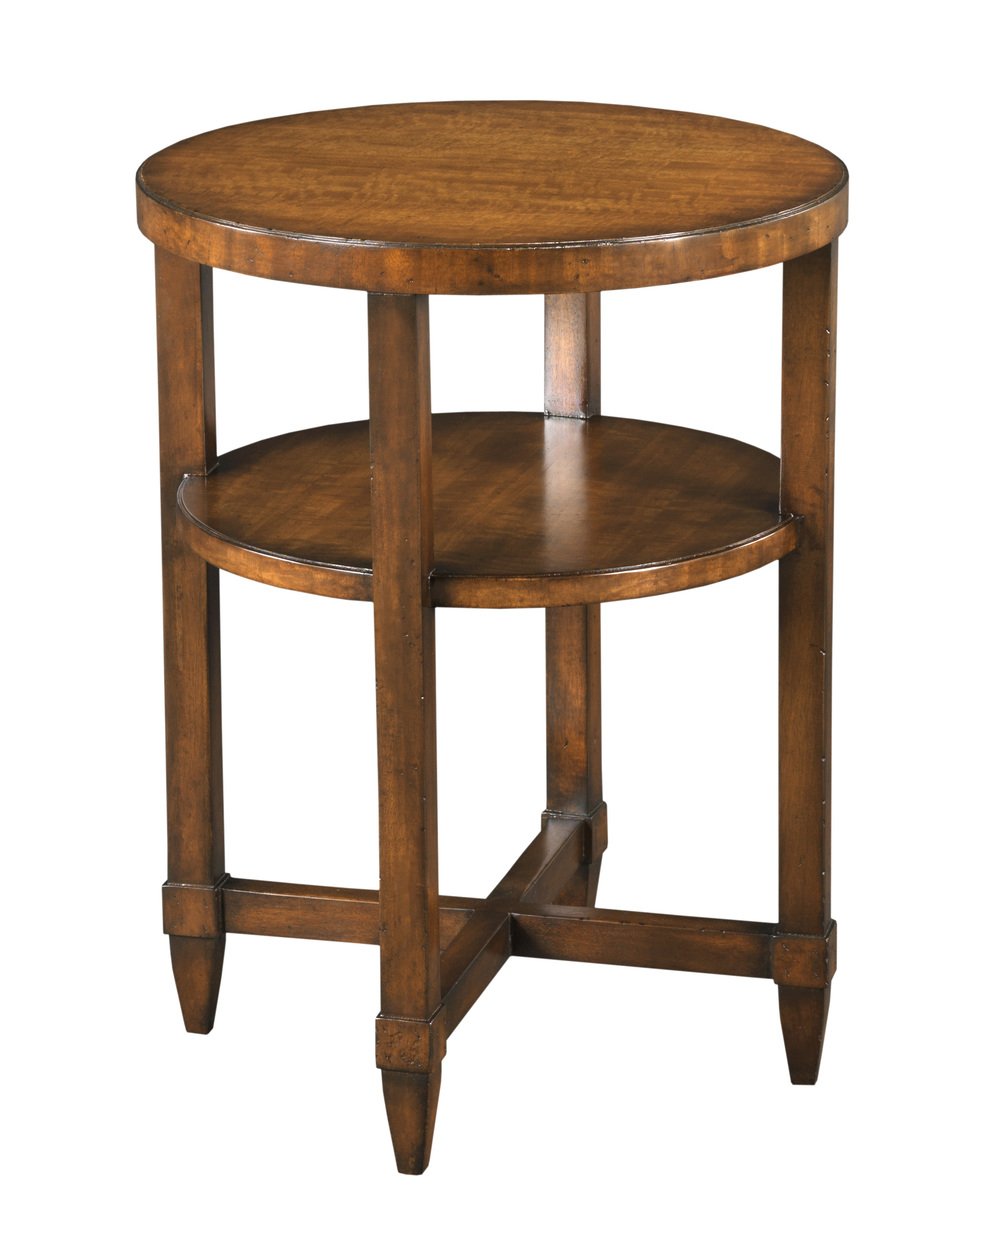 Woodbridge Furniture Company - Greenwich Drink Table